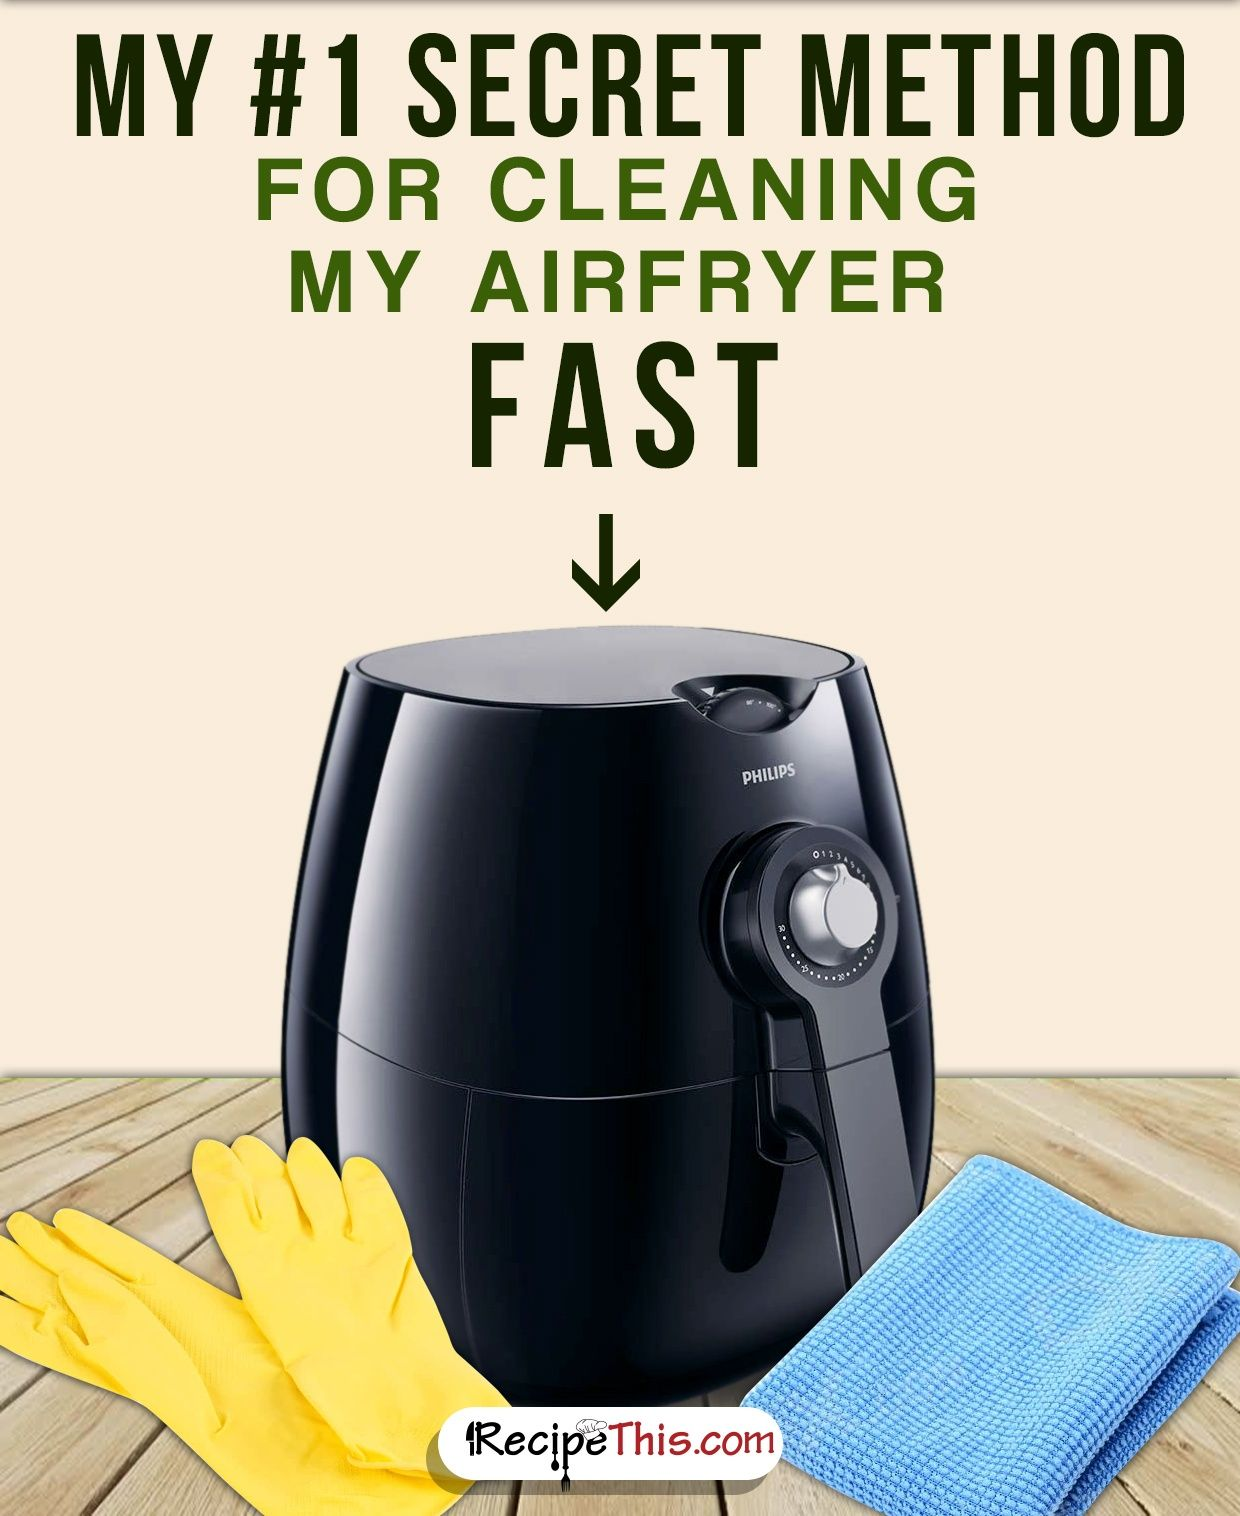 How To Clean Your Airfryer  Air fryer recipes easy, Air fryer